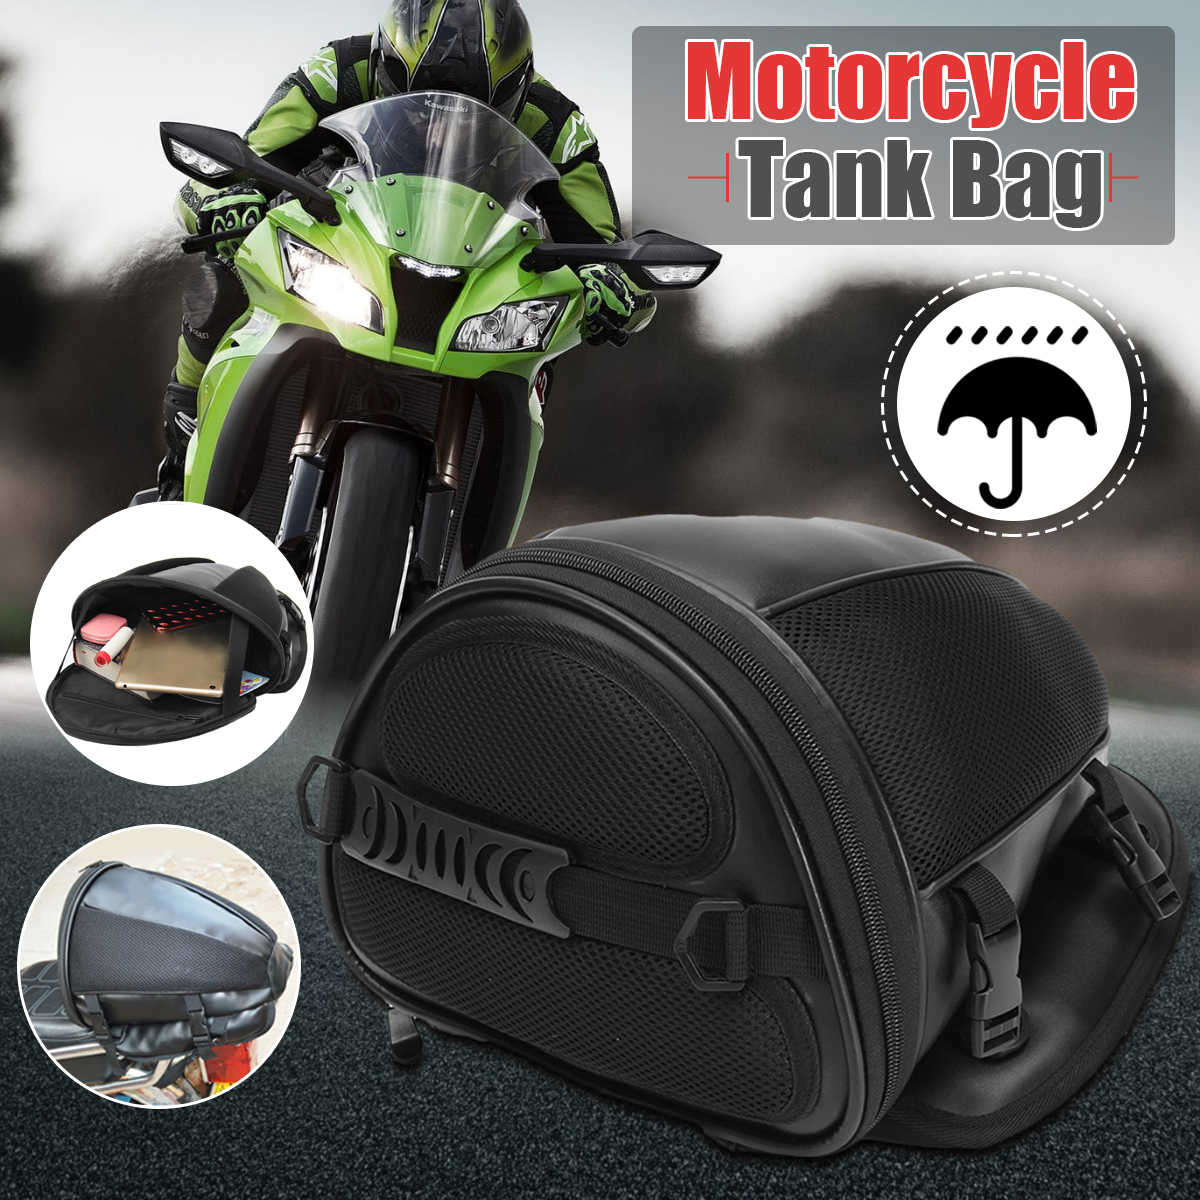 54f721ddf Universal Motorcycle Waterproof Luggage Tail Box Tank Saddle Bag Bike Sports  Gear Case Carrying Convenience Removable